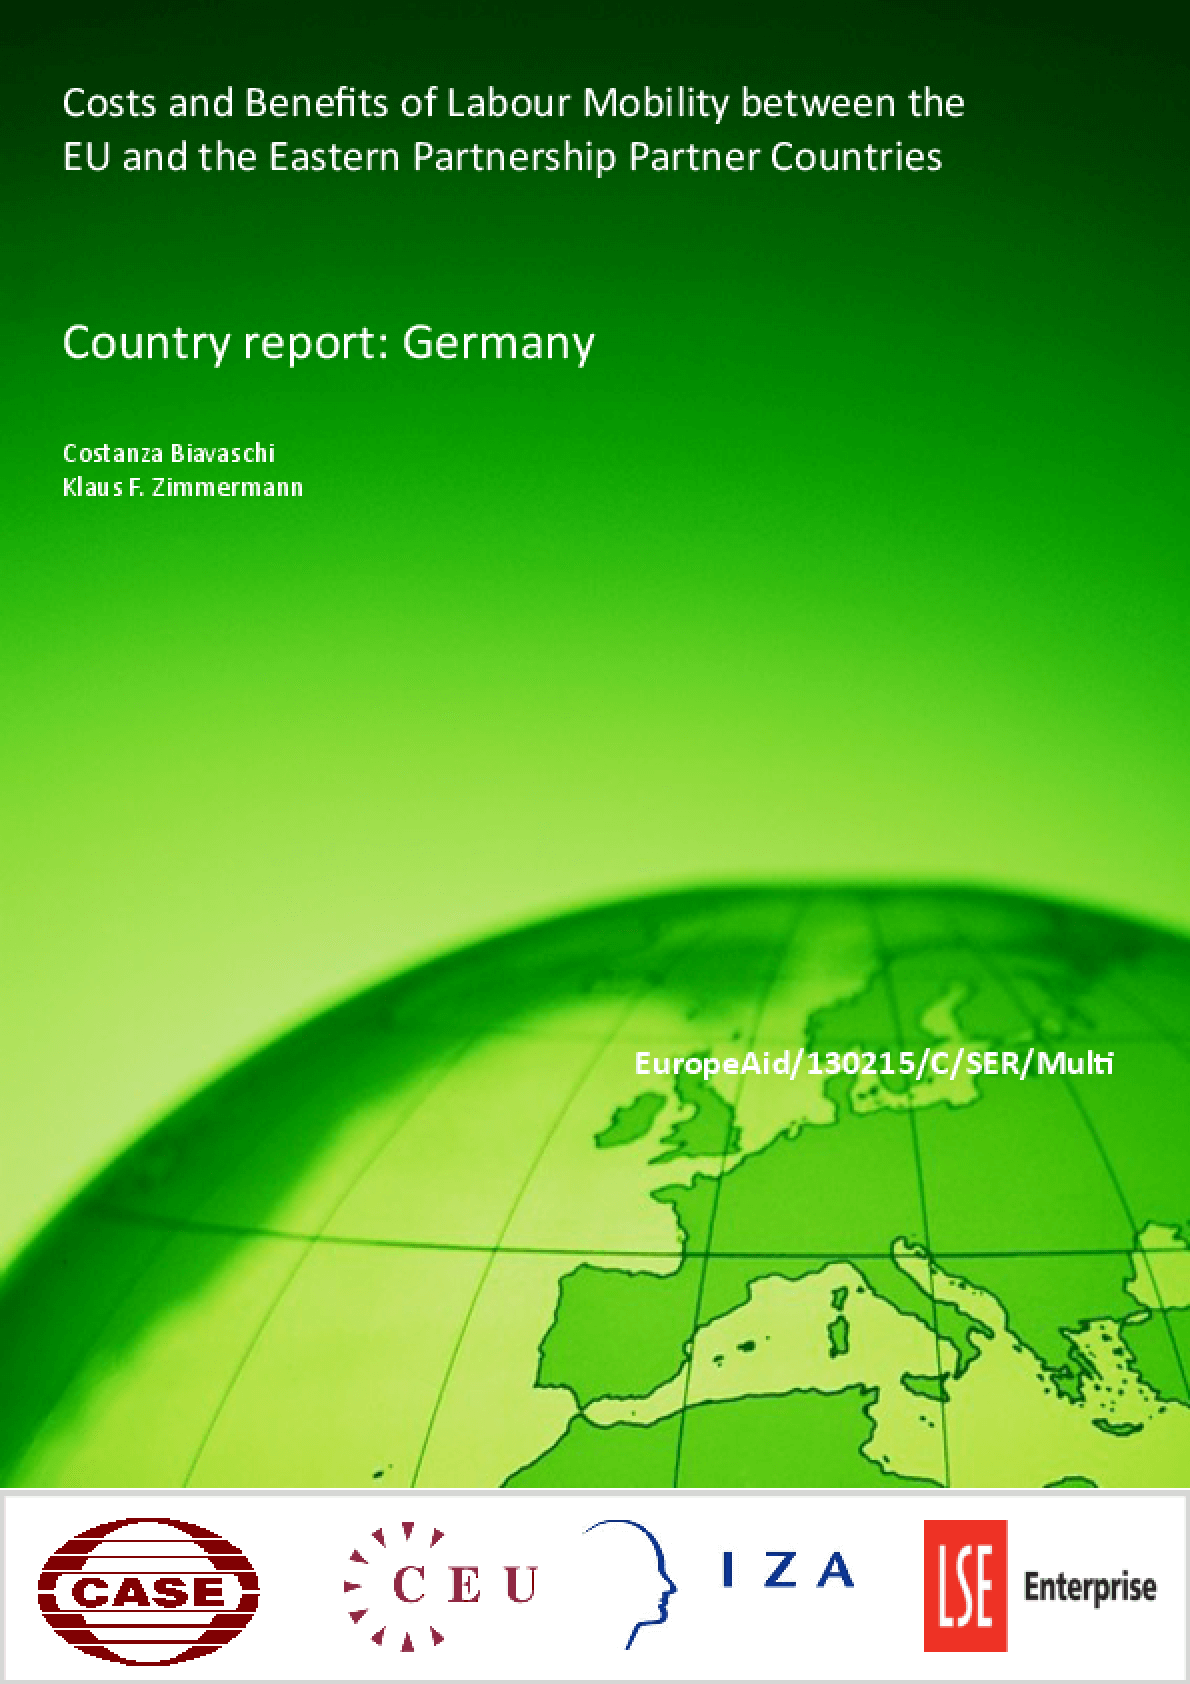 Costs and Benefits of Labour Mobility Between the EU and the Eastern Partnership Partner Countries. Country Report: Germany